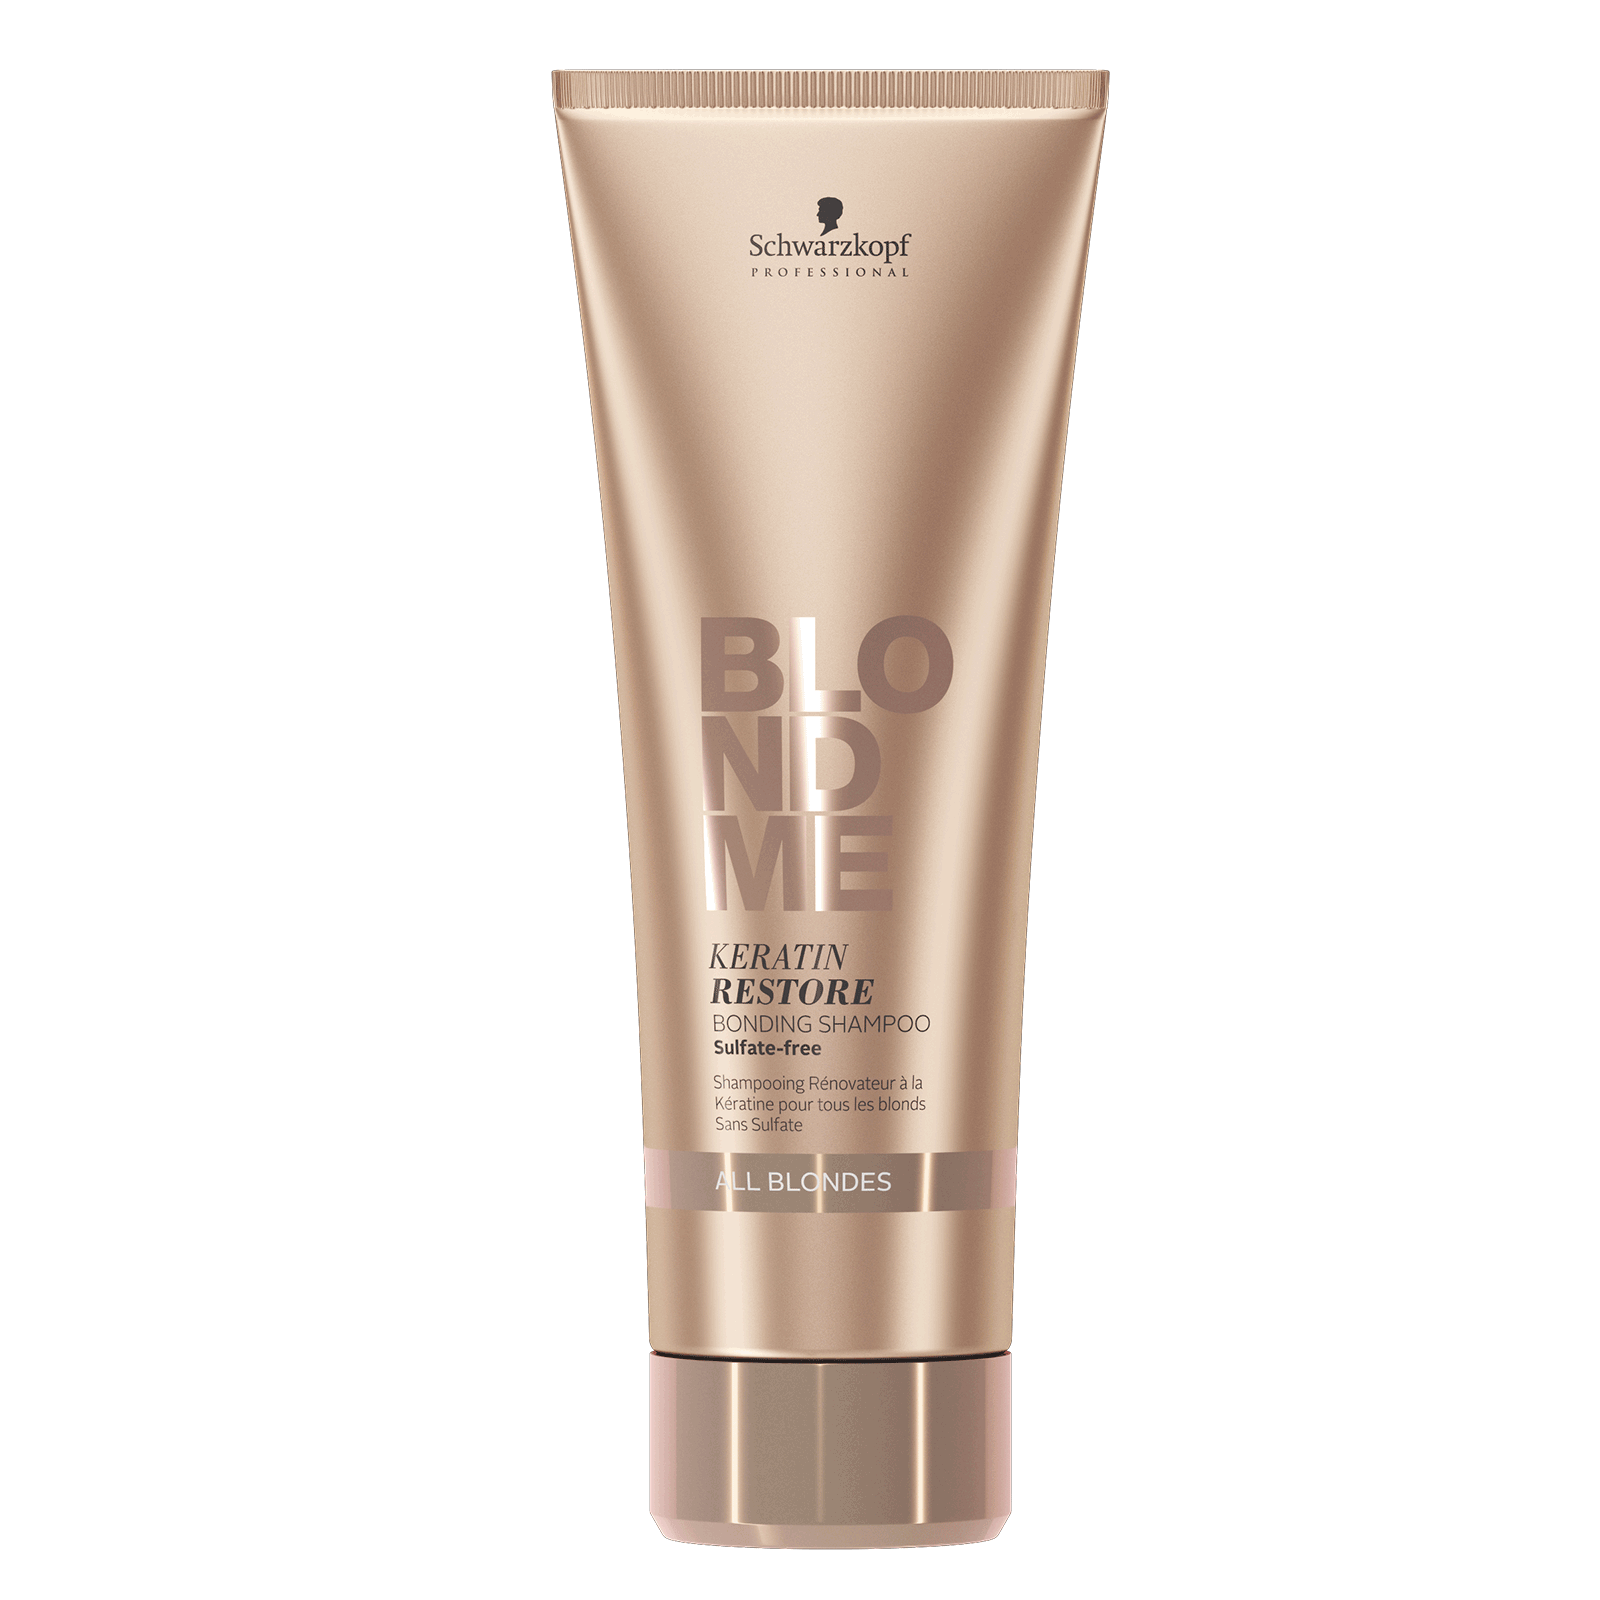 BlondMe - Keratin Restore Bonding Shampoo